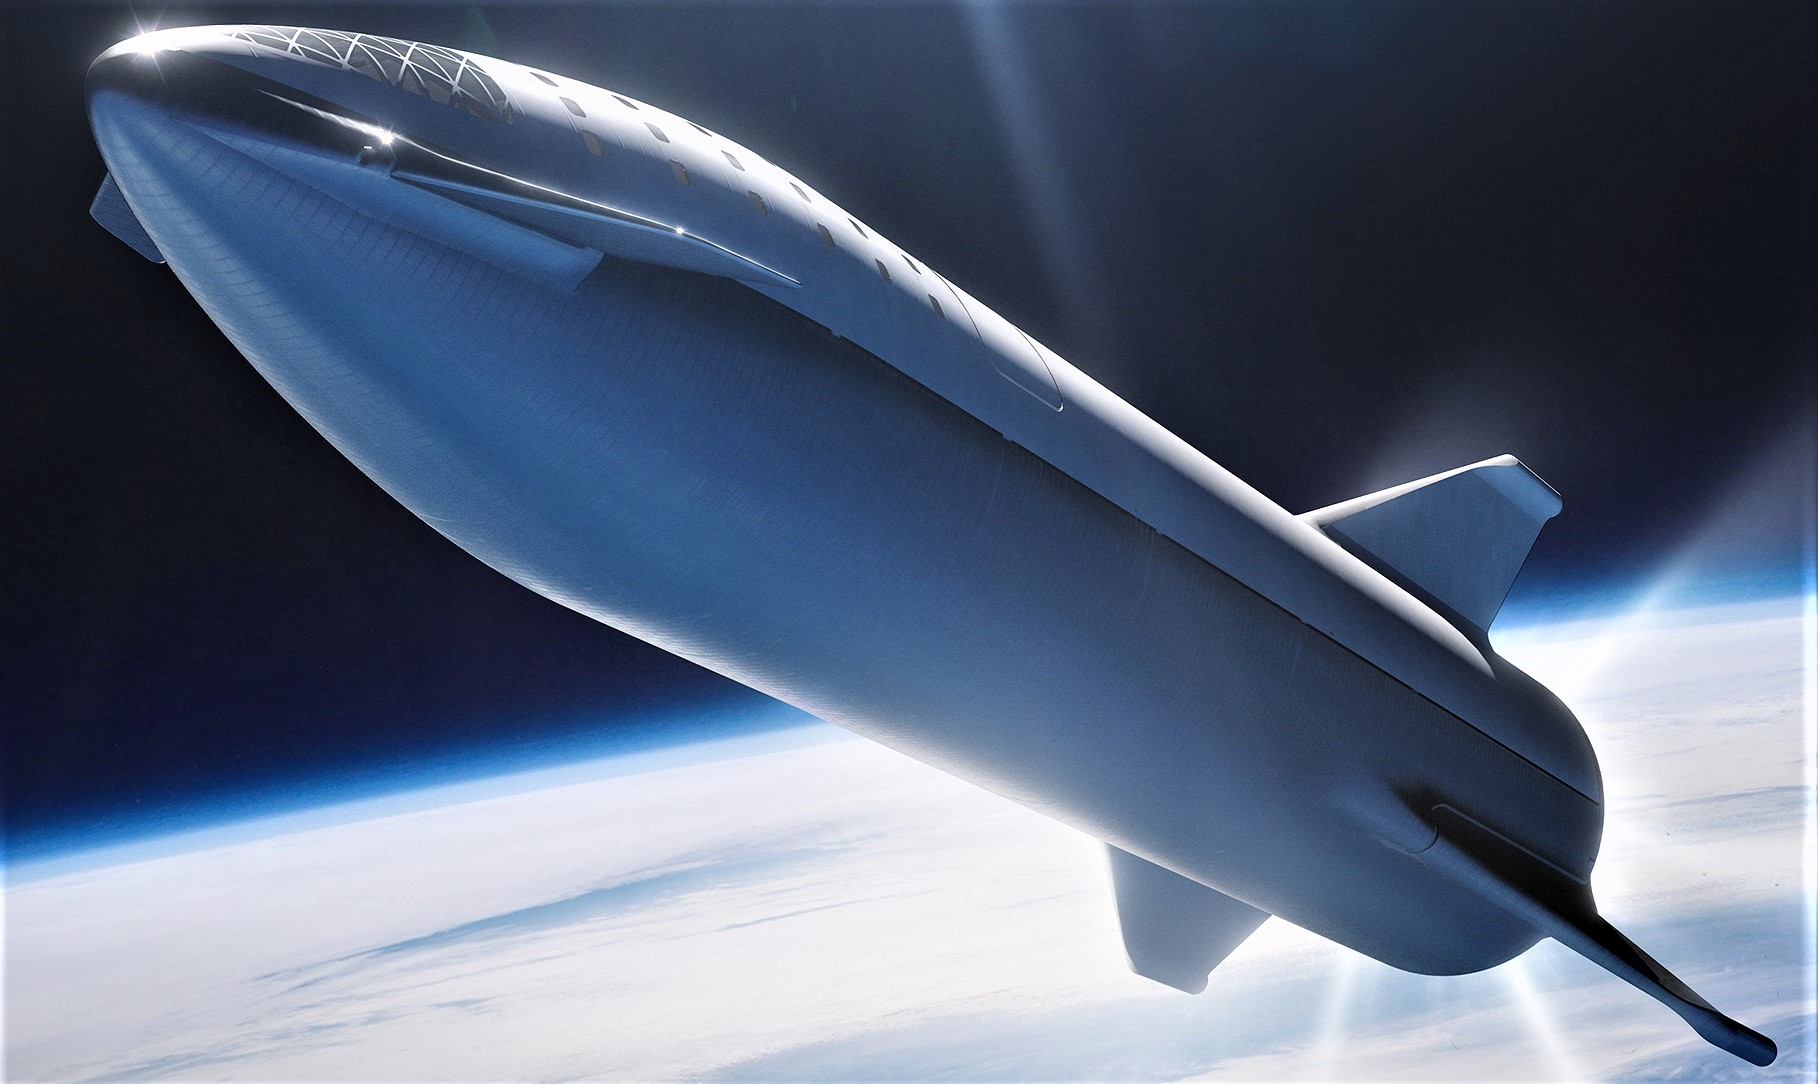 News					SpaceX's BFR rocket and spaceship look more real than ever in new 4K renders